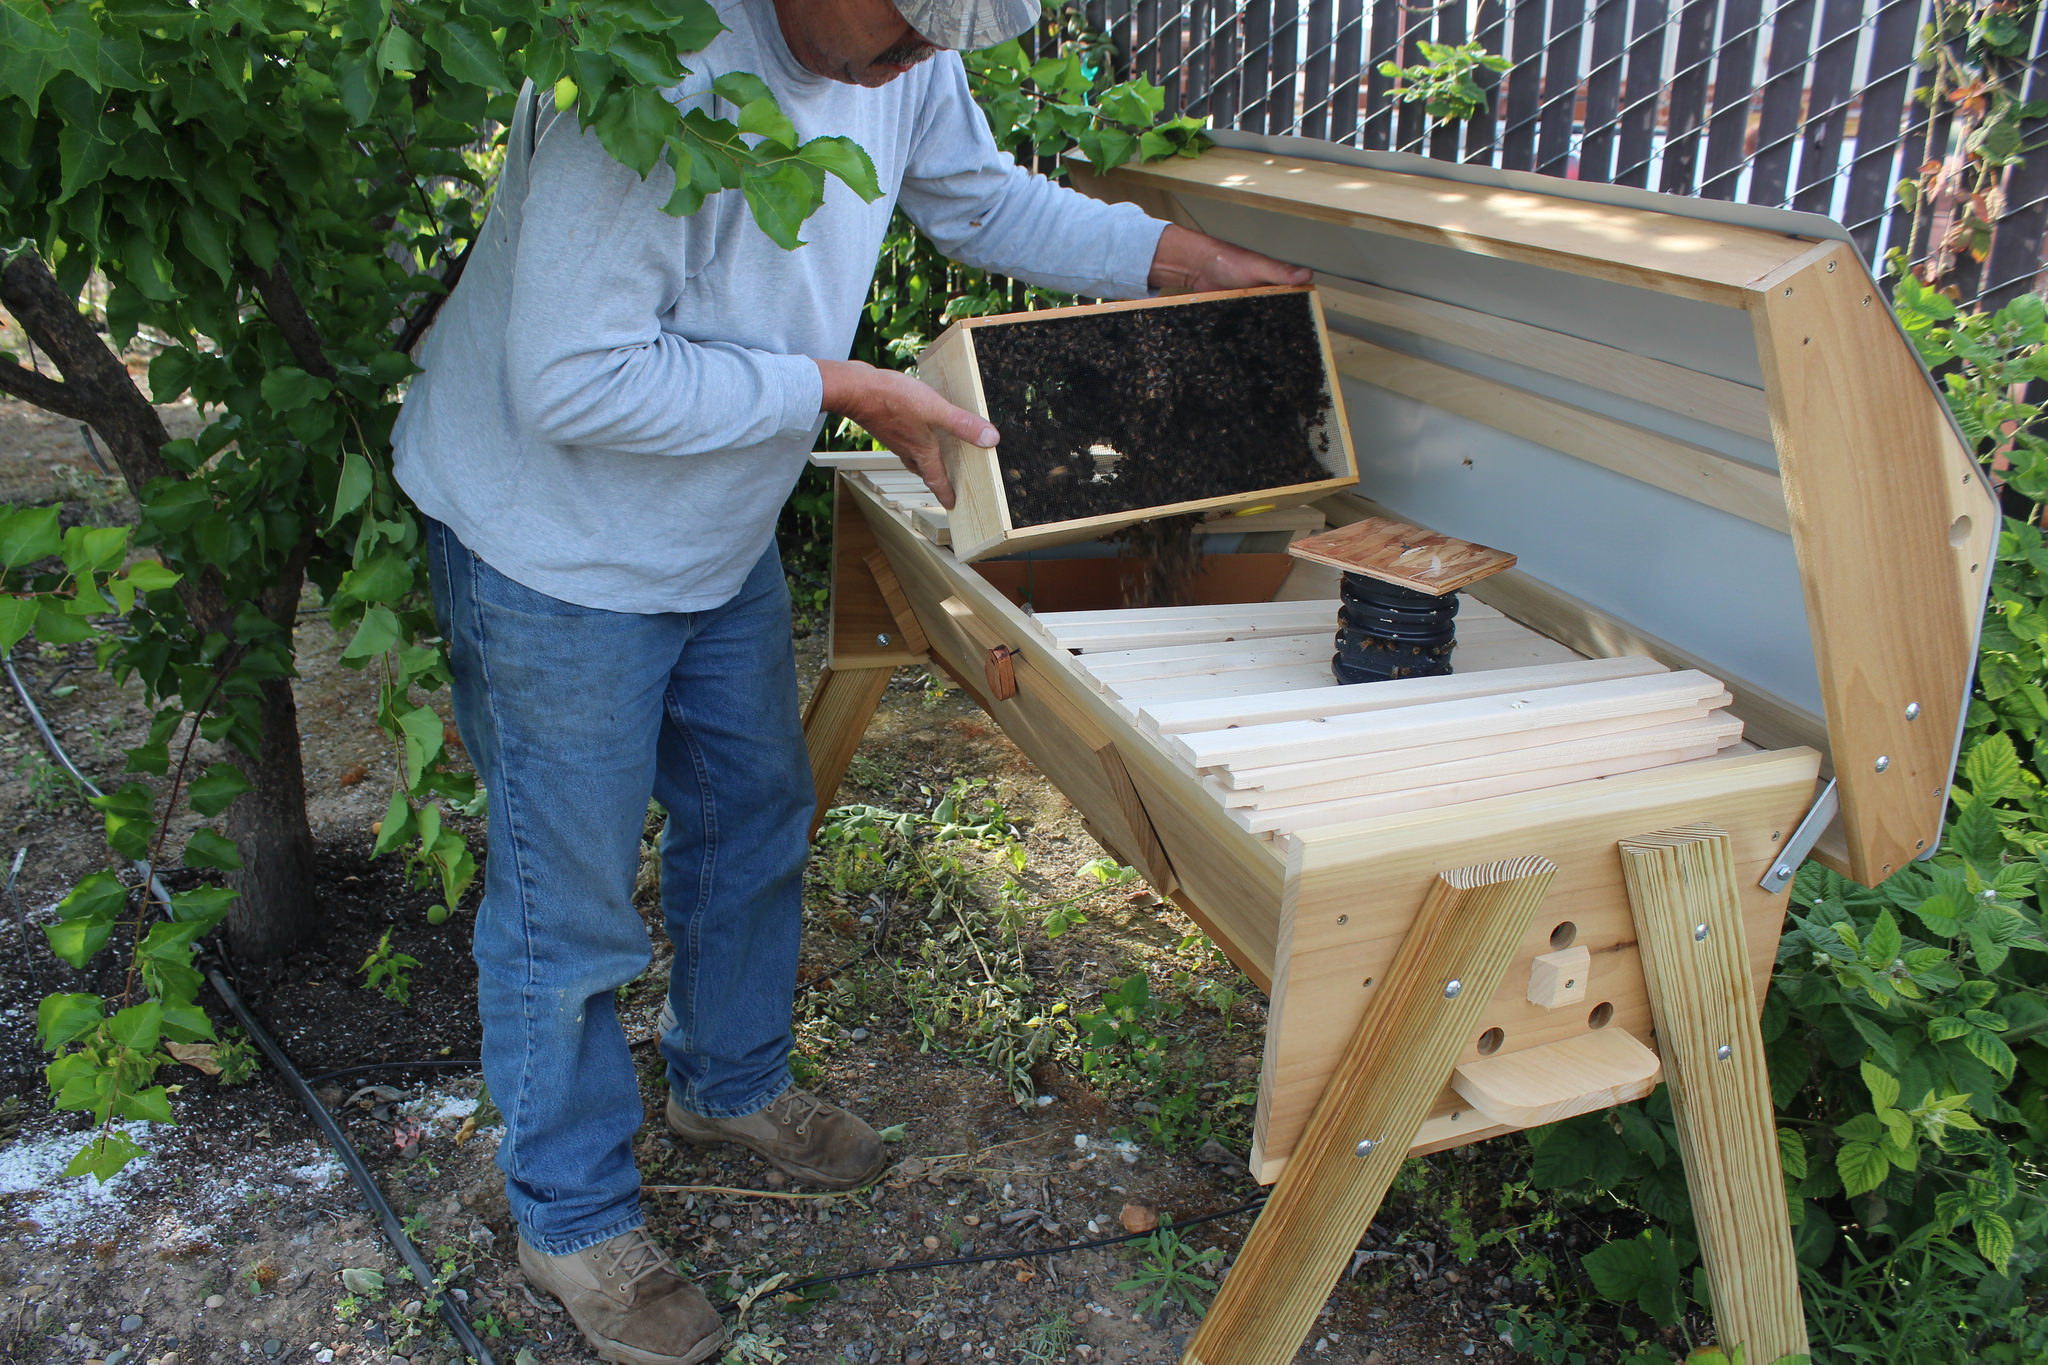 Introducing bees into the hive